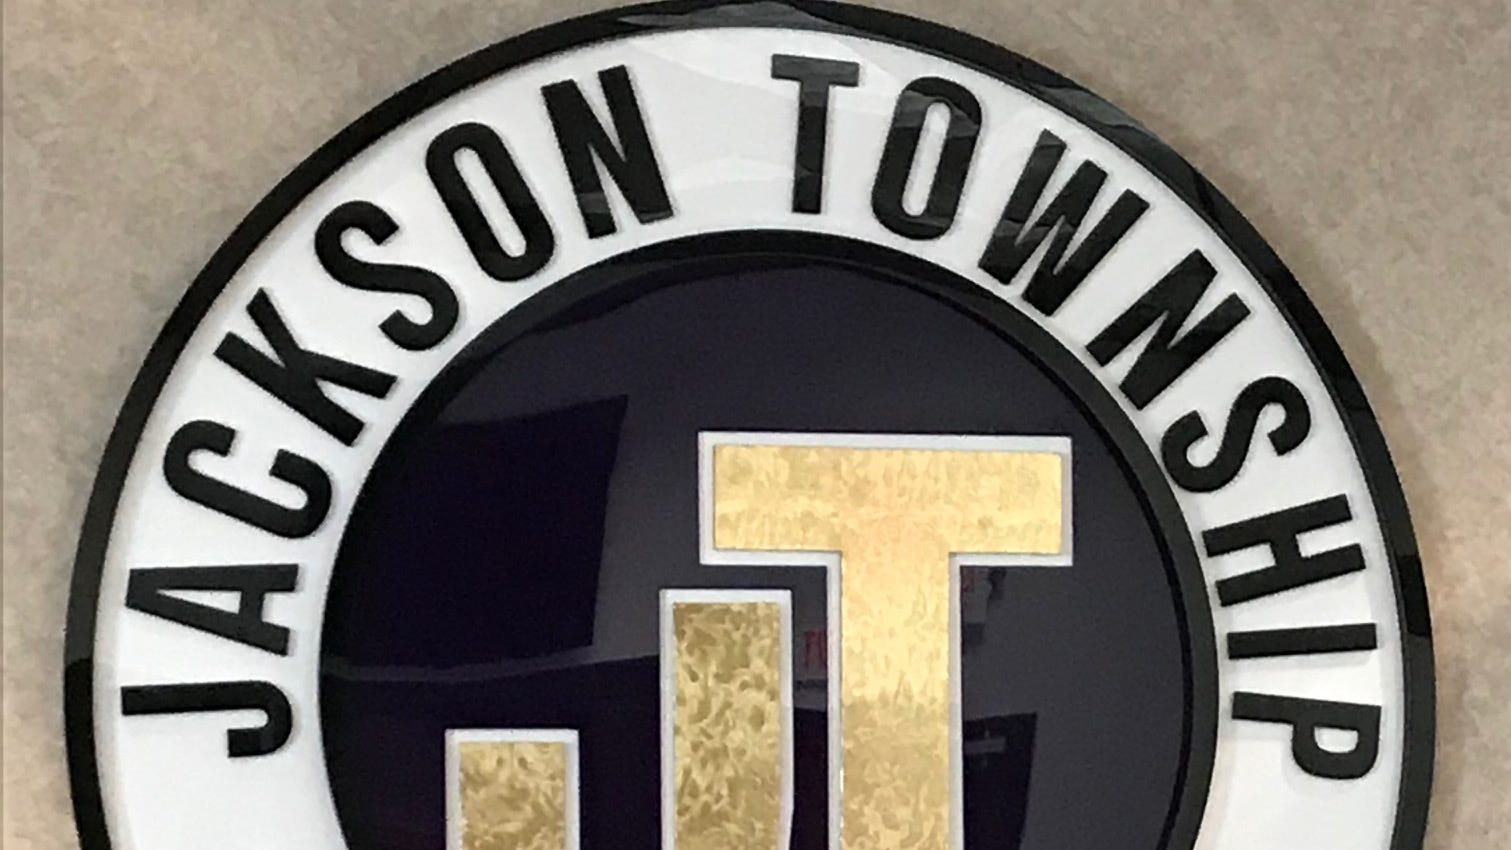 Jackson trustee race crowded, with incumbents facing four challengers